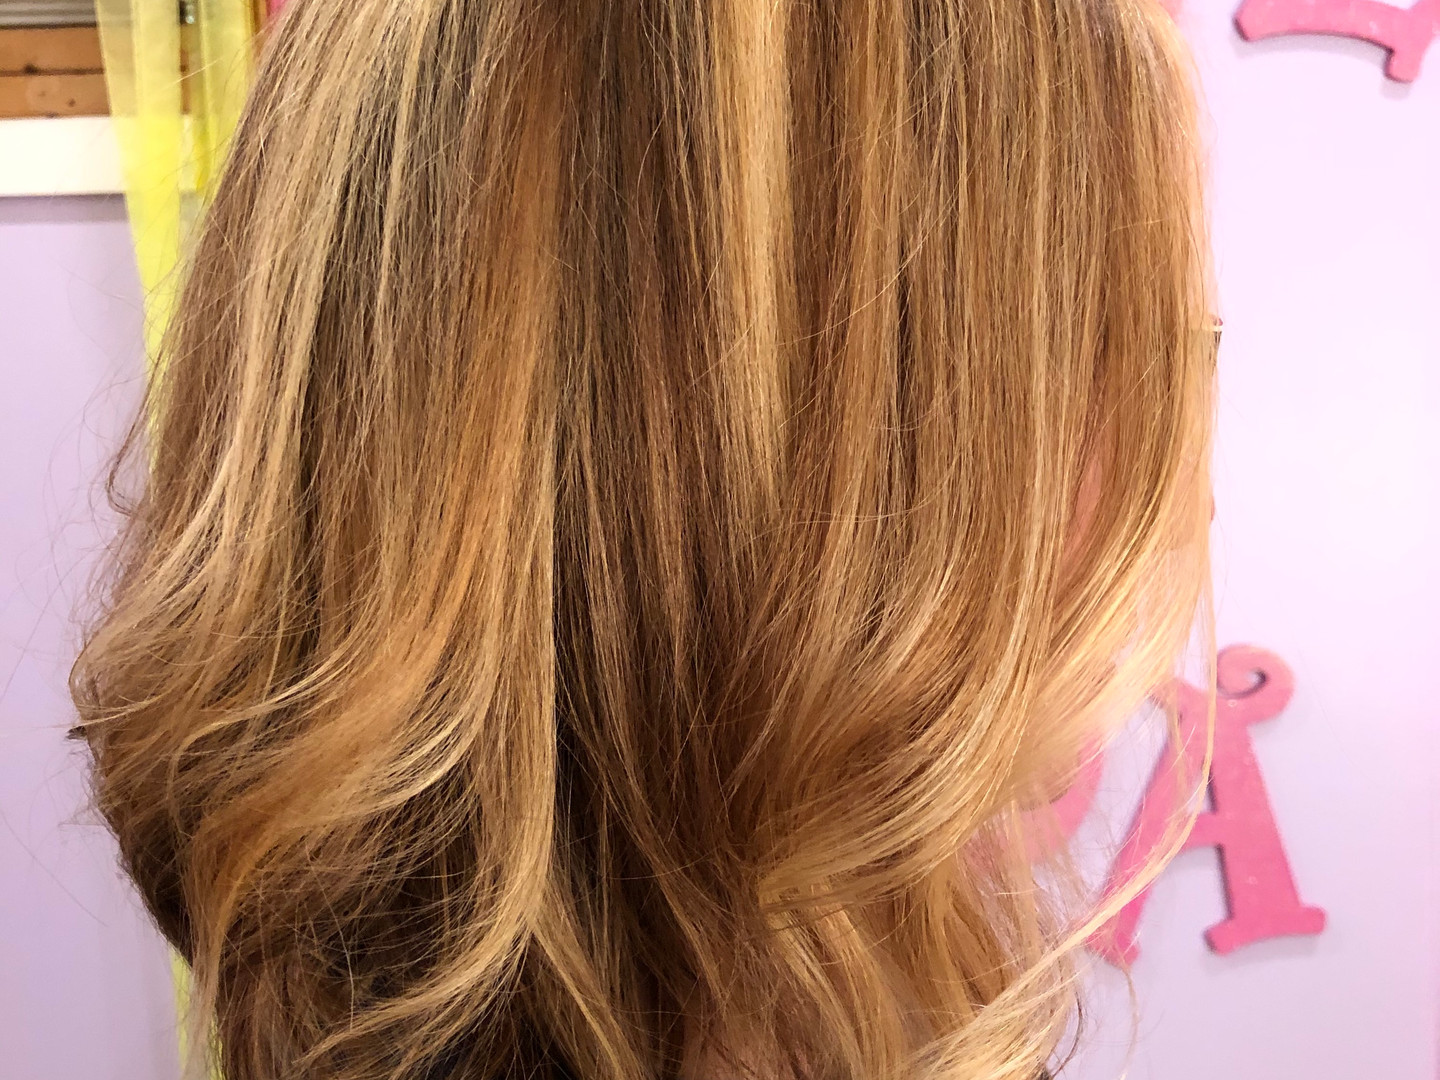 Hair cut, color and hilights